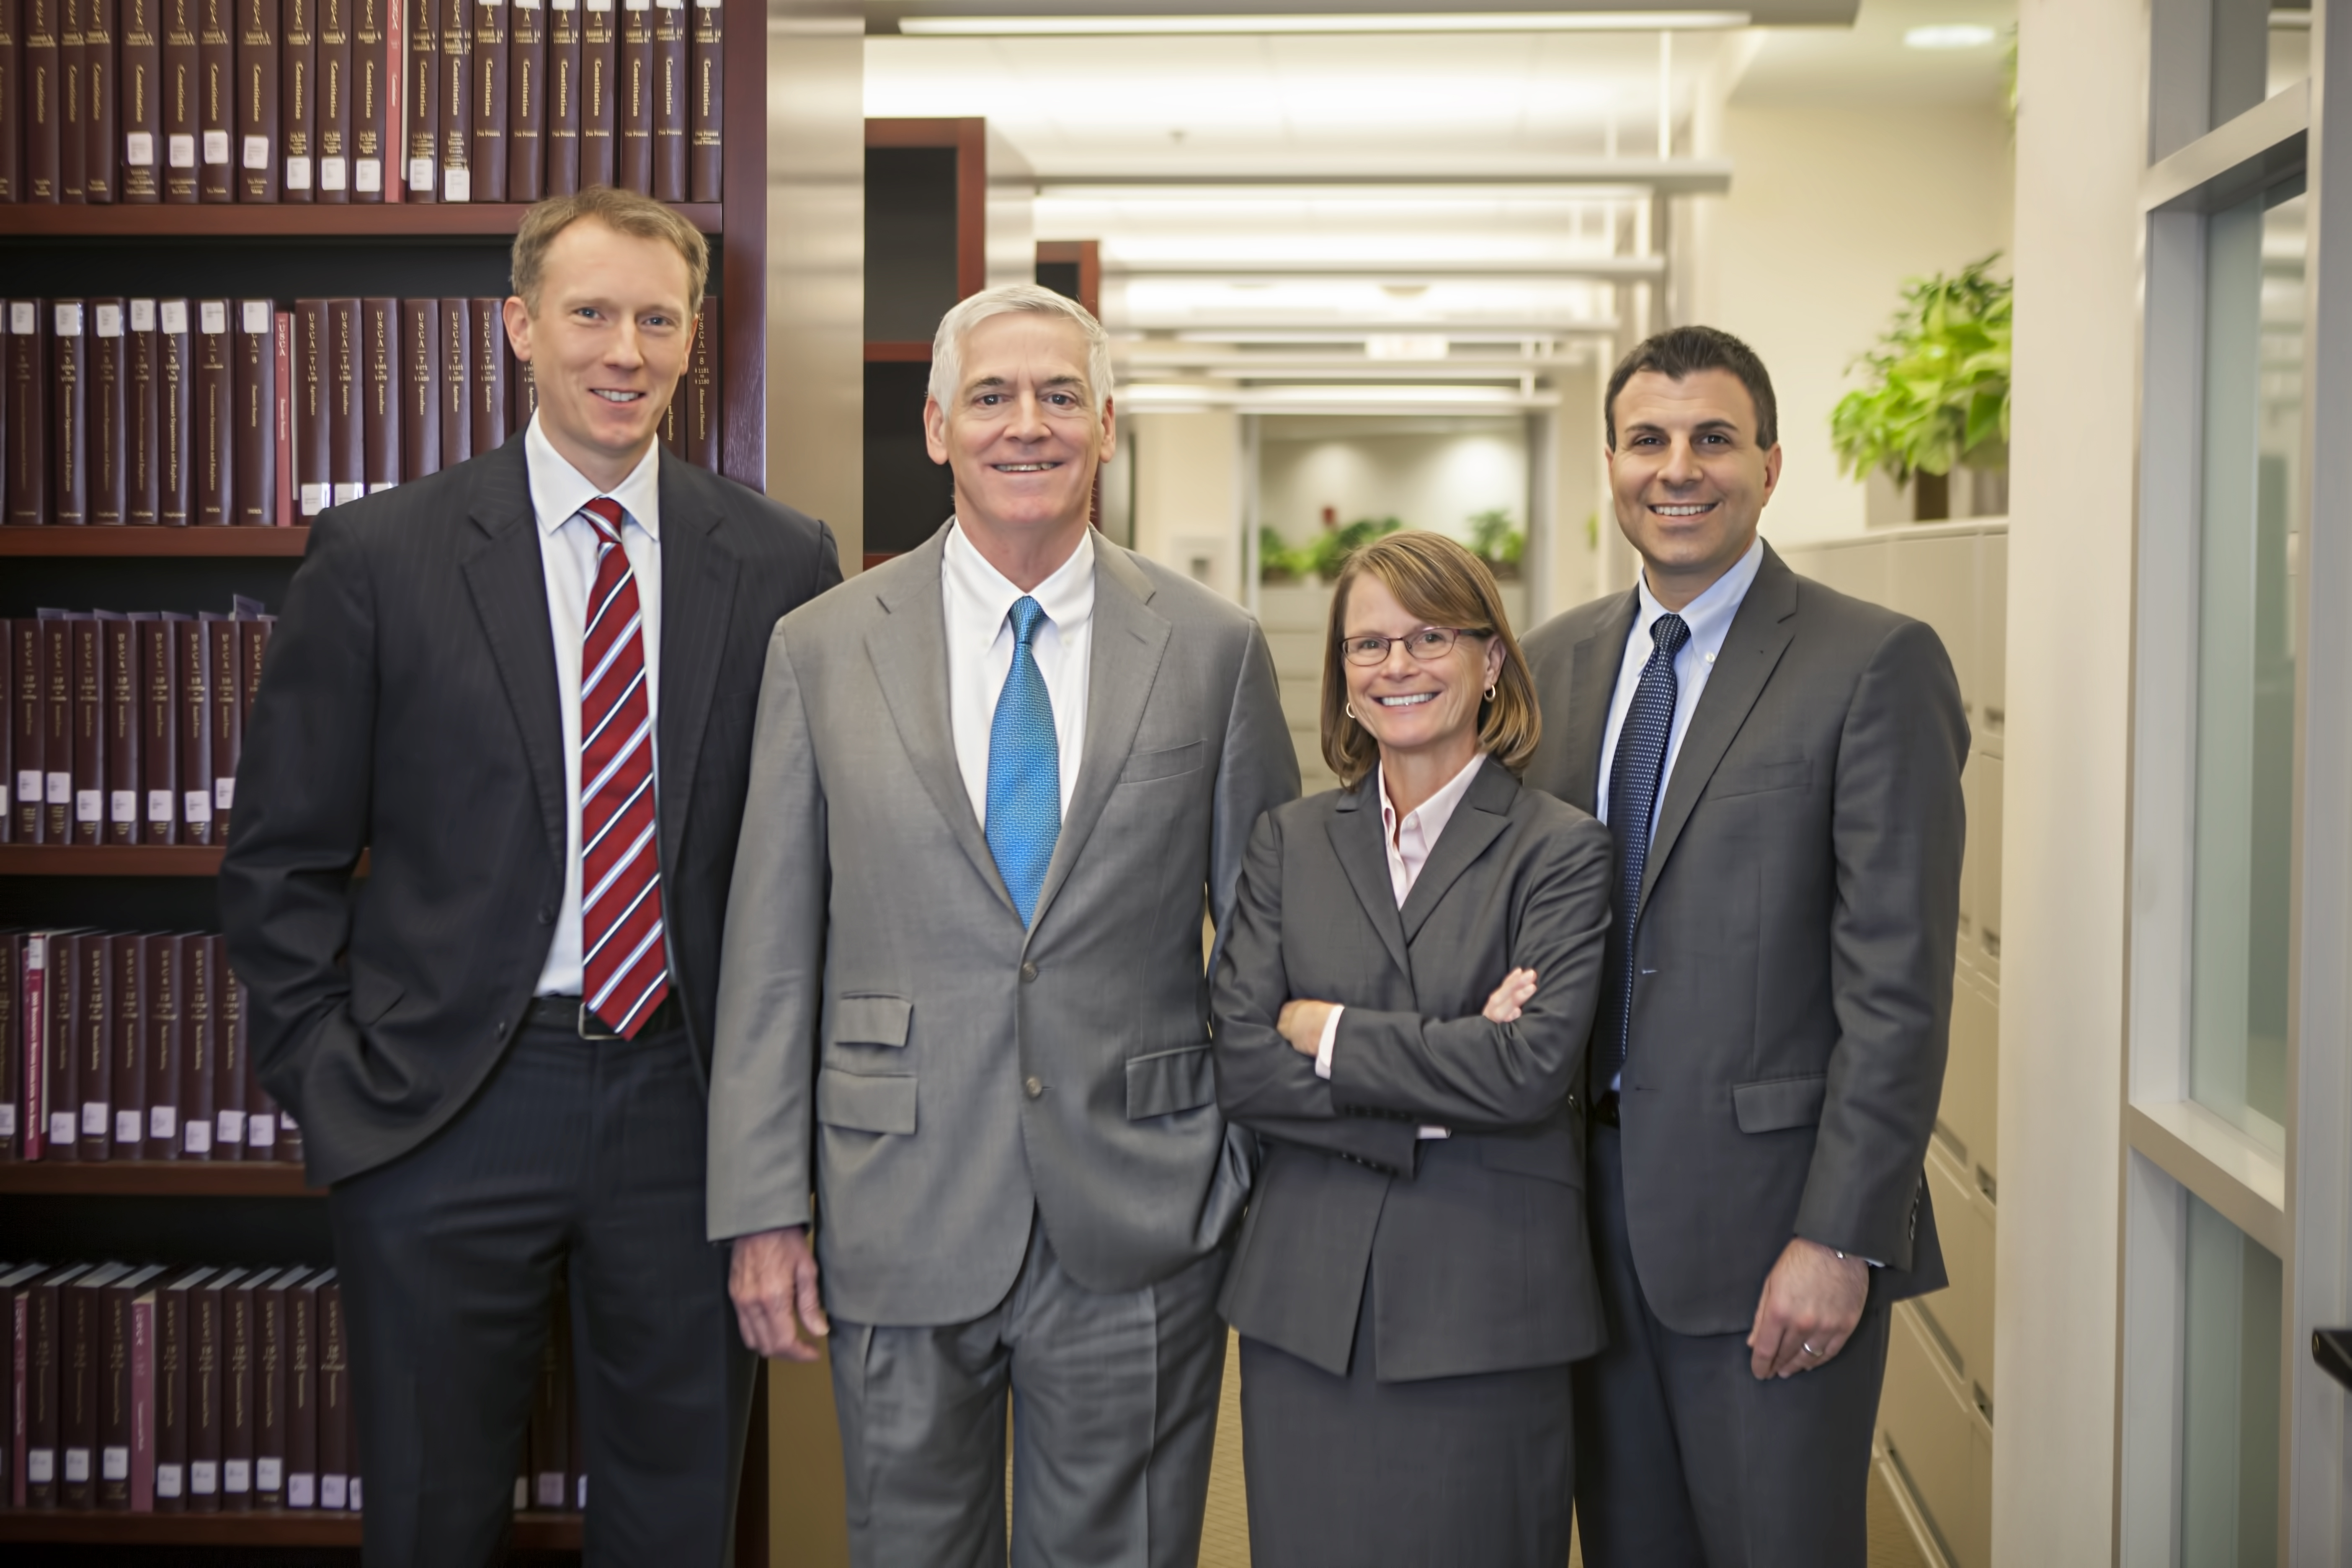 Wilson & Helms Firm Rolls its Attorneys, Practices into Nelson Mullins in Winston-Salem